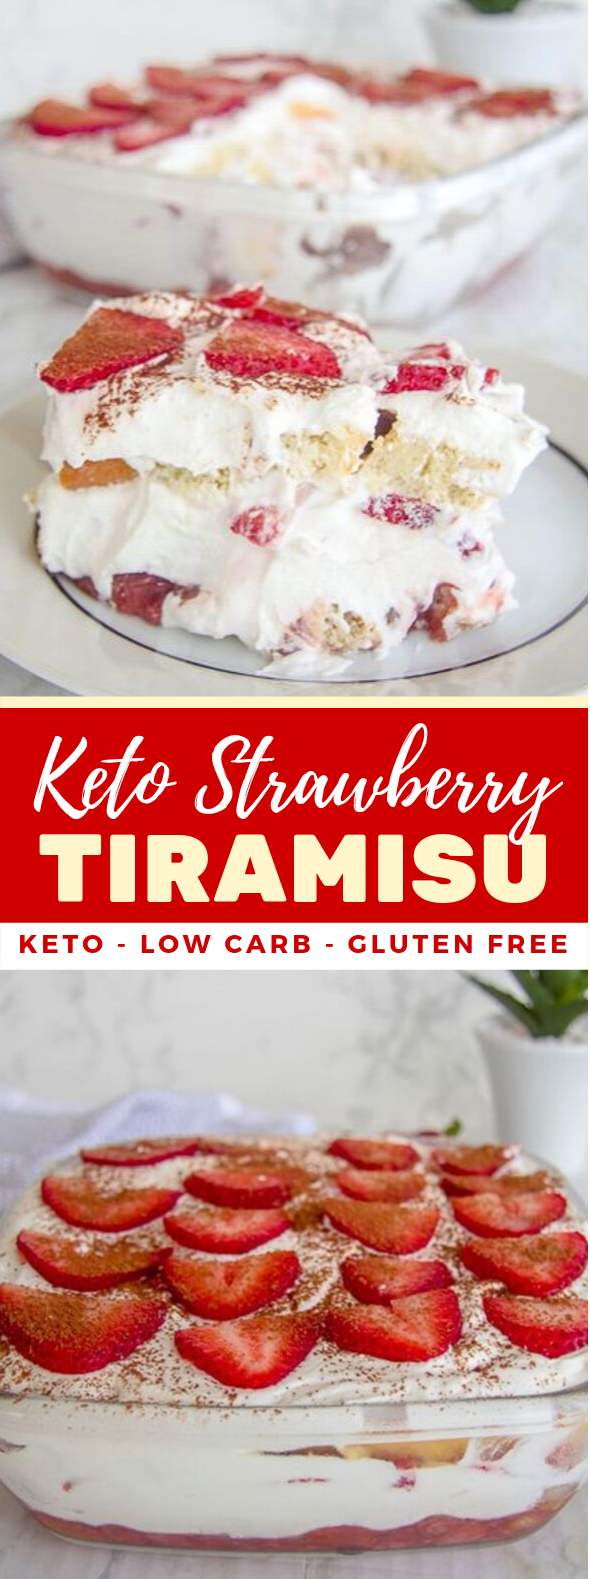 Keto Strawberry Tiramisu #lowcarb #healthydessert